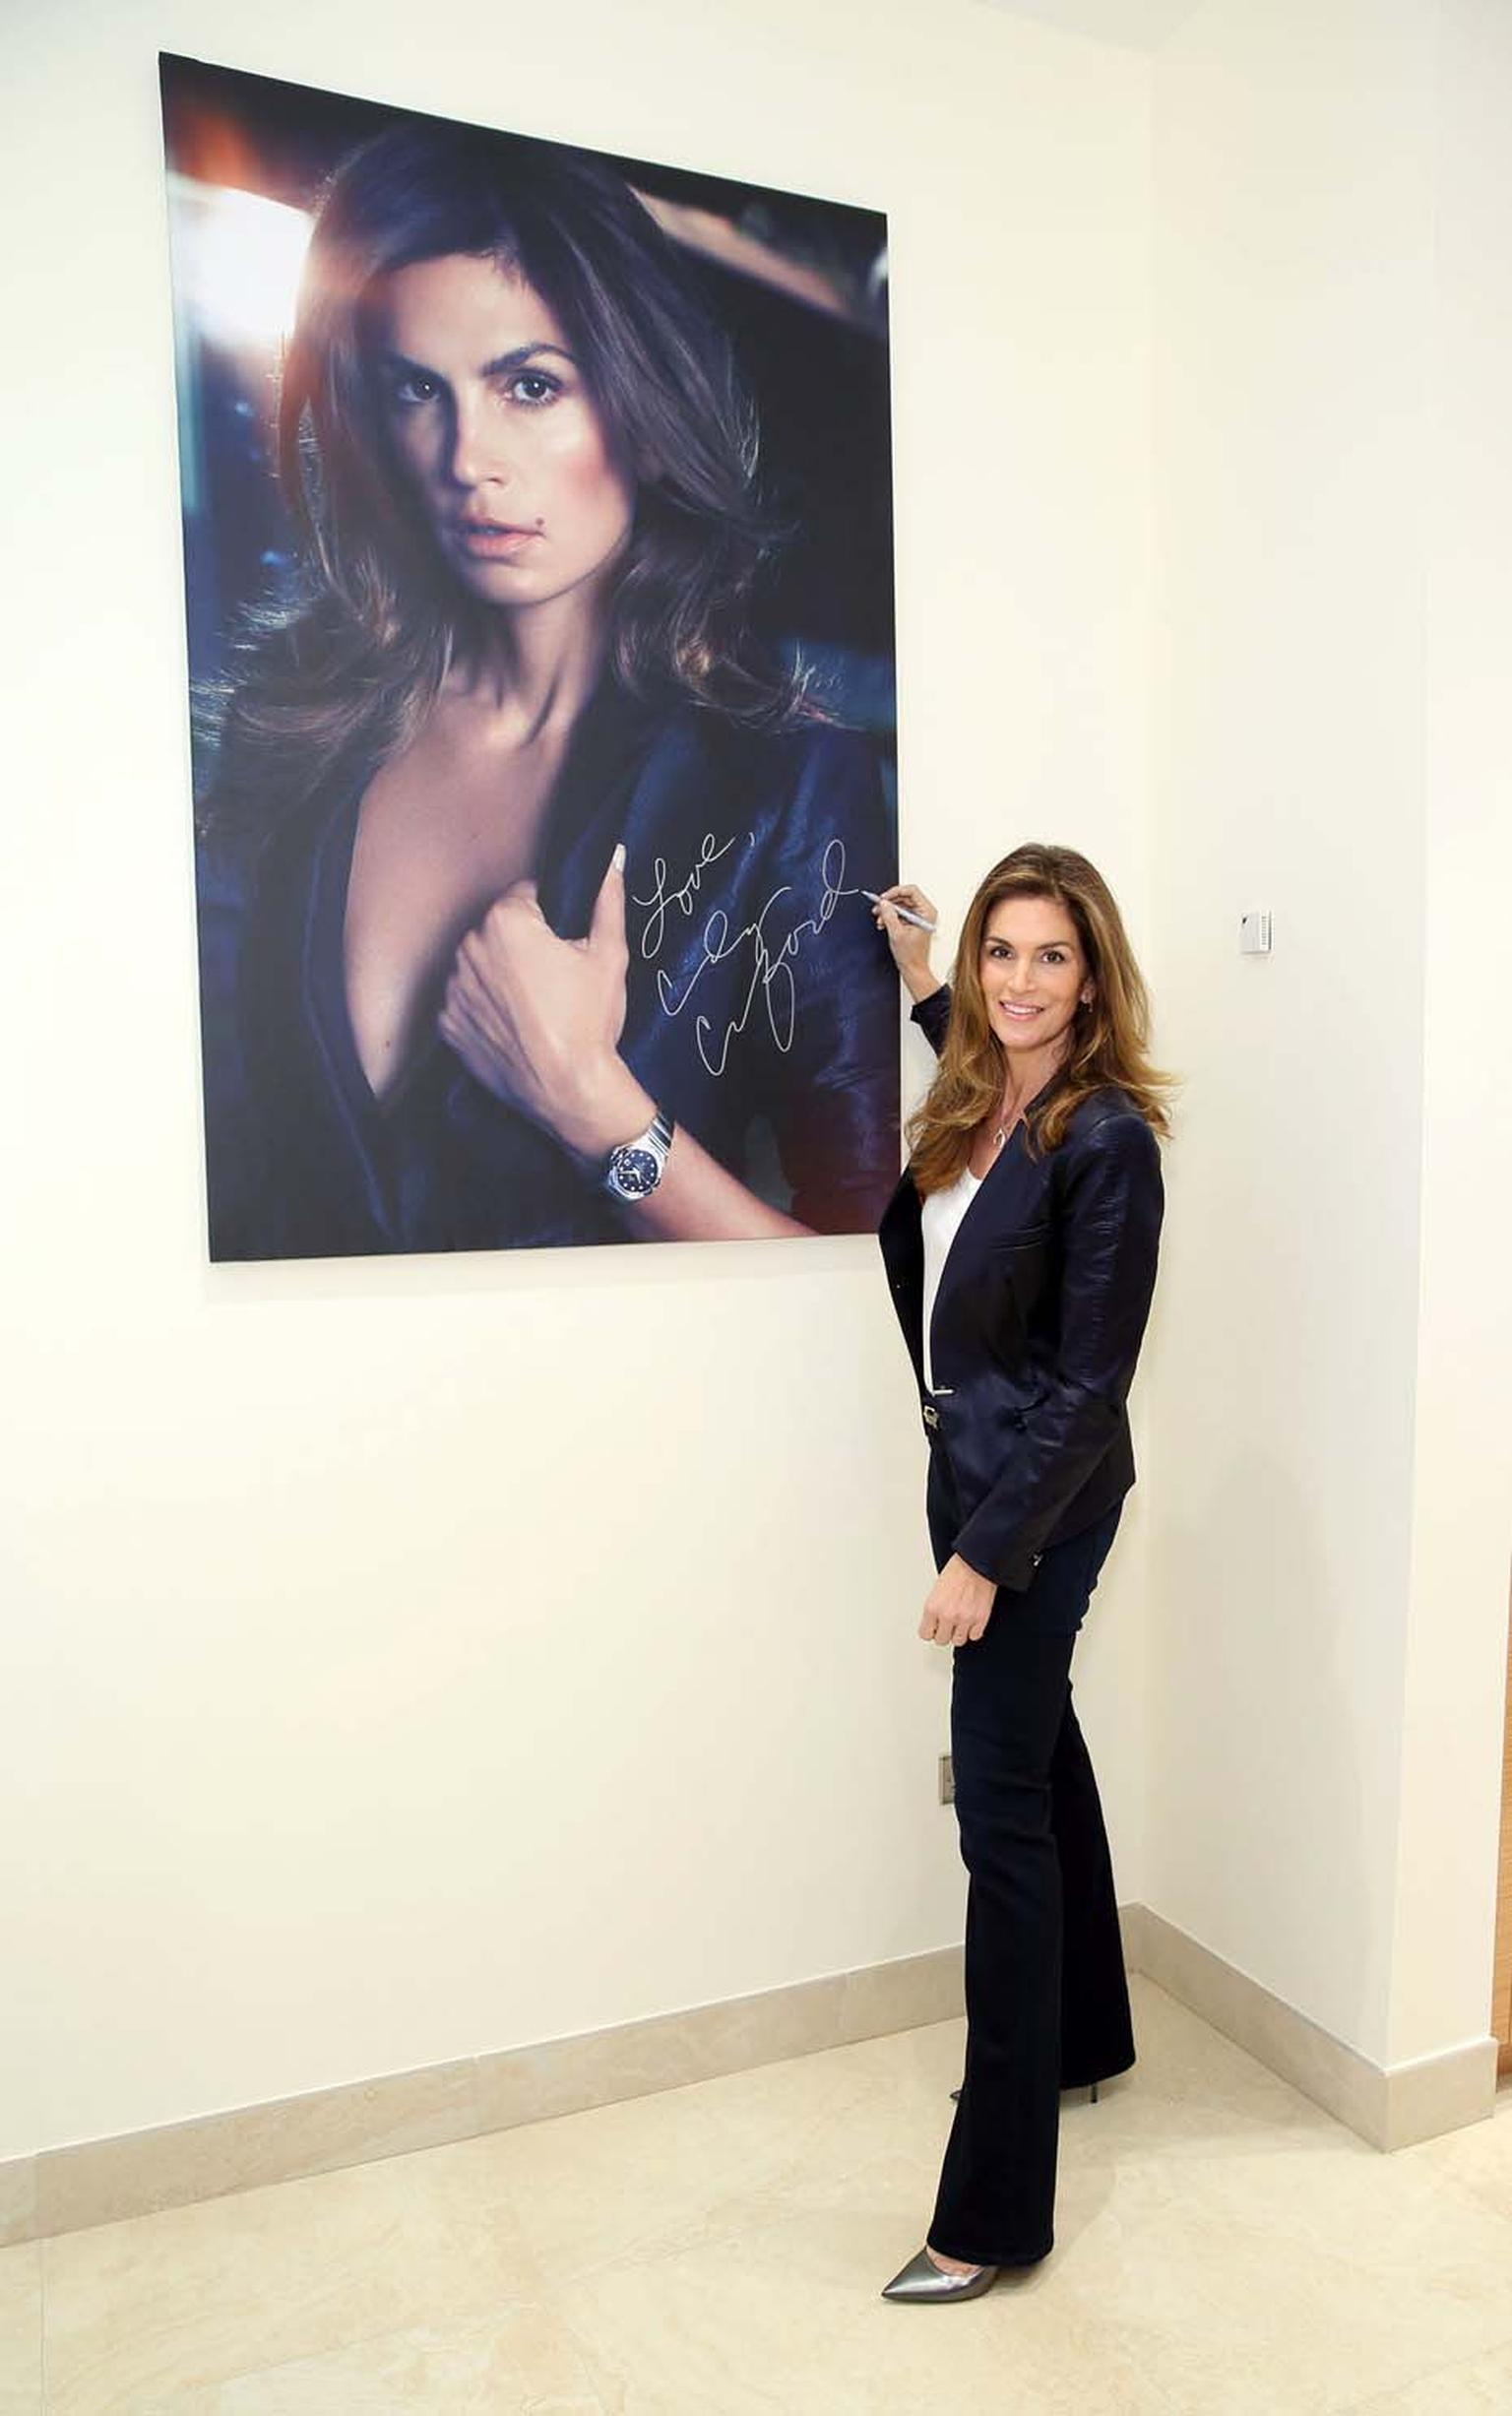 Omega chose Cindy Crawford to join its family for her style and for sharing many of Omega's values, such as quality, reliability and a strong sense of tradition.